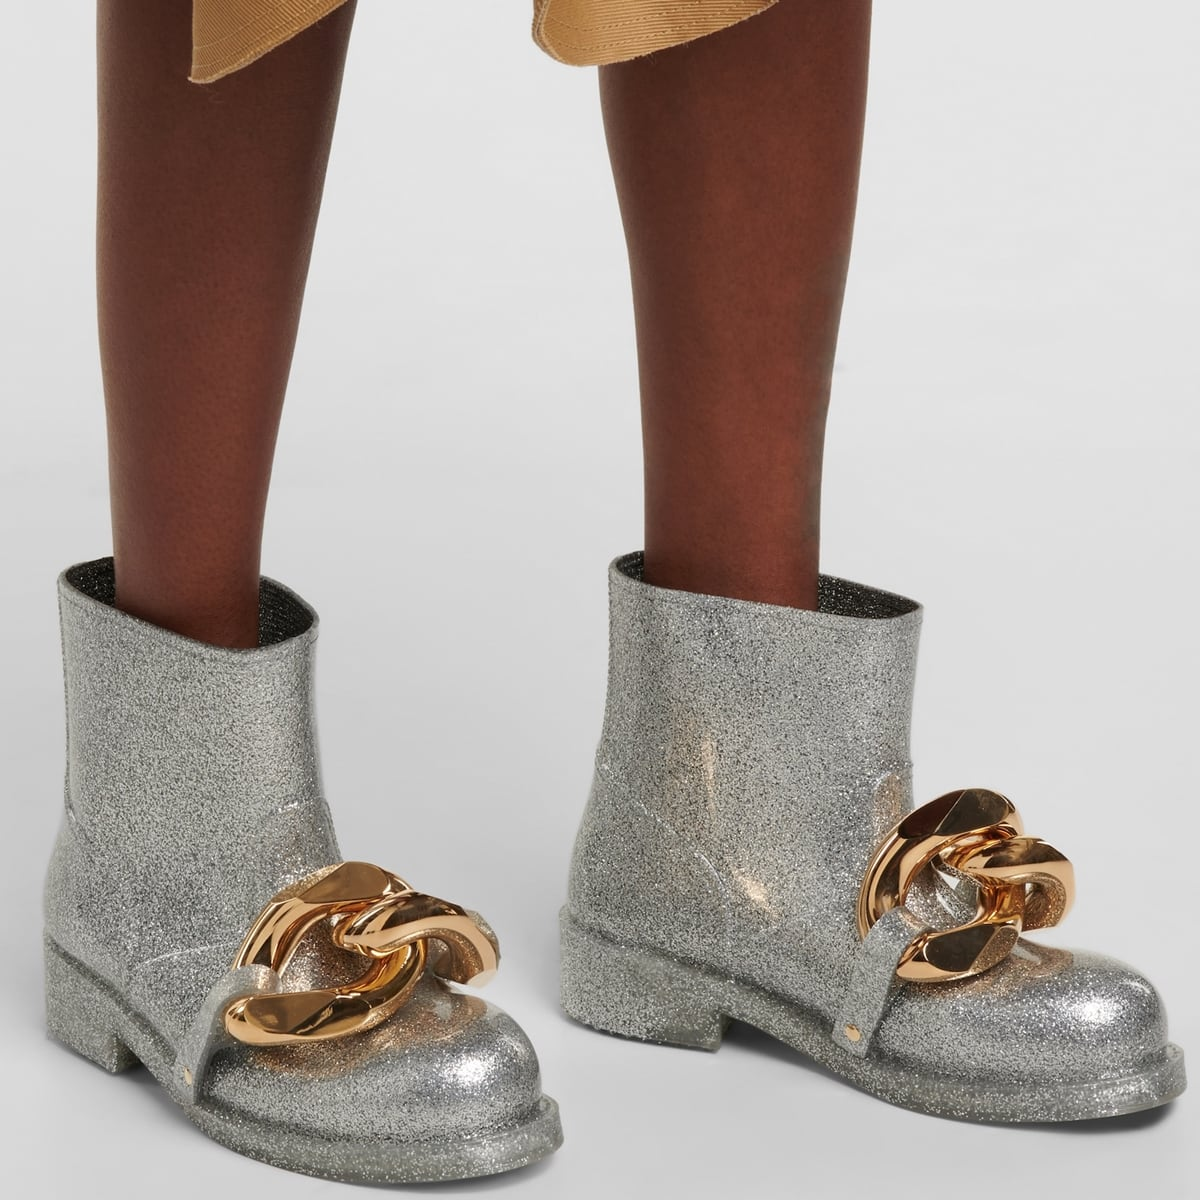 Silver-tone JW Anderson sparkling glittered rubber rain boots with chunky sculptural gold-tone chain embellishments